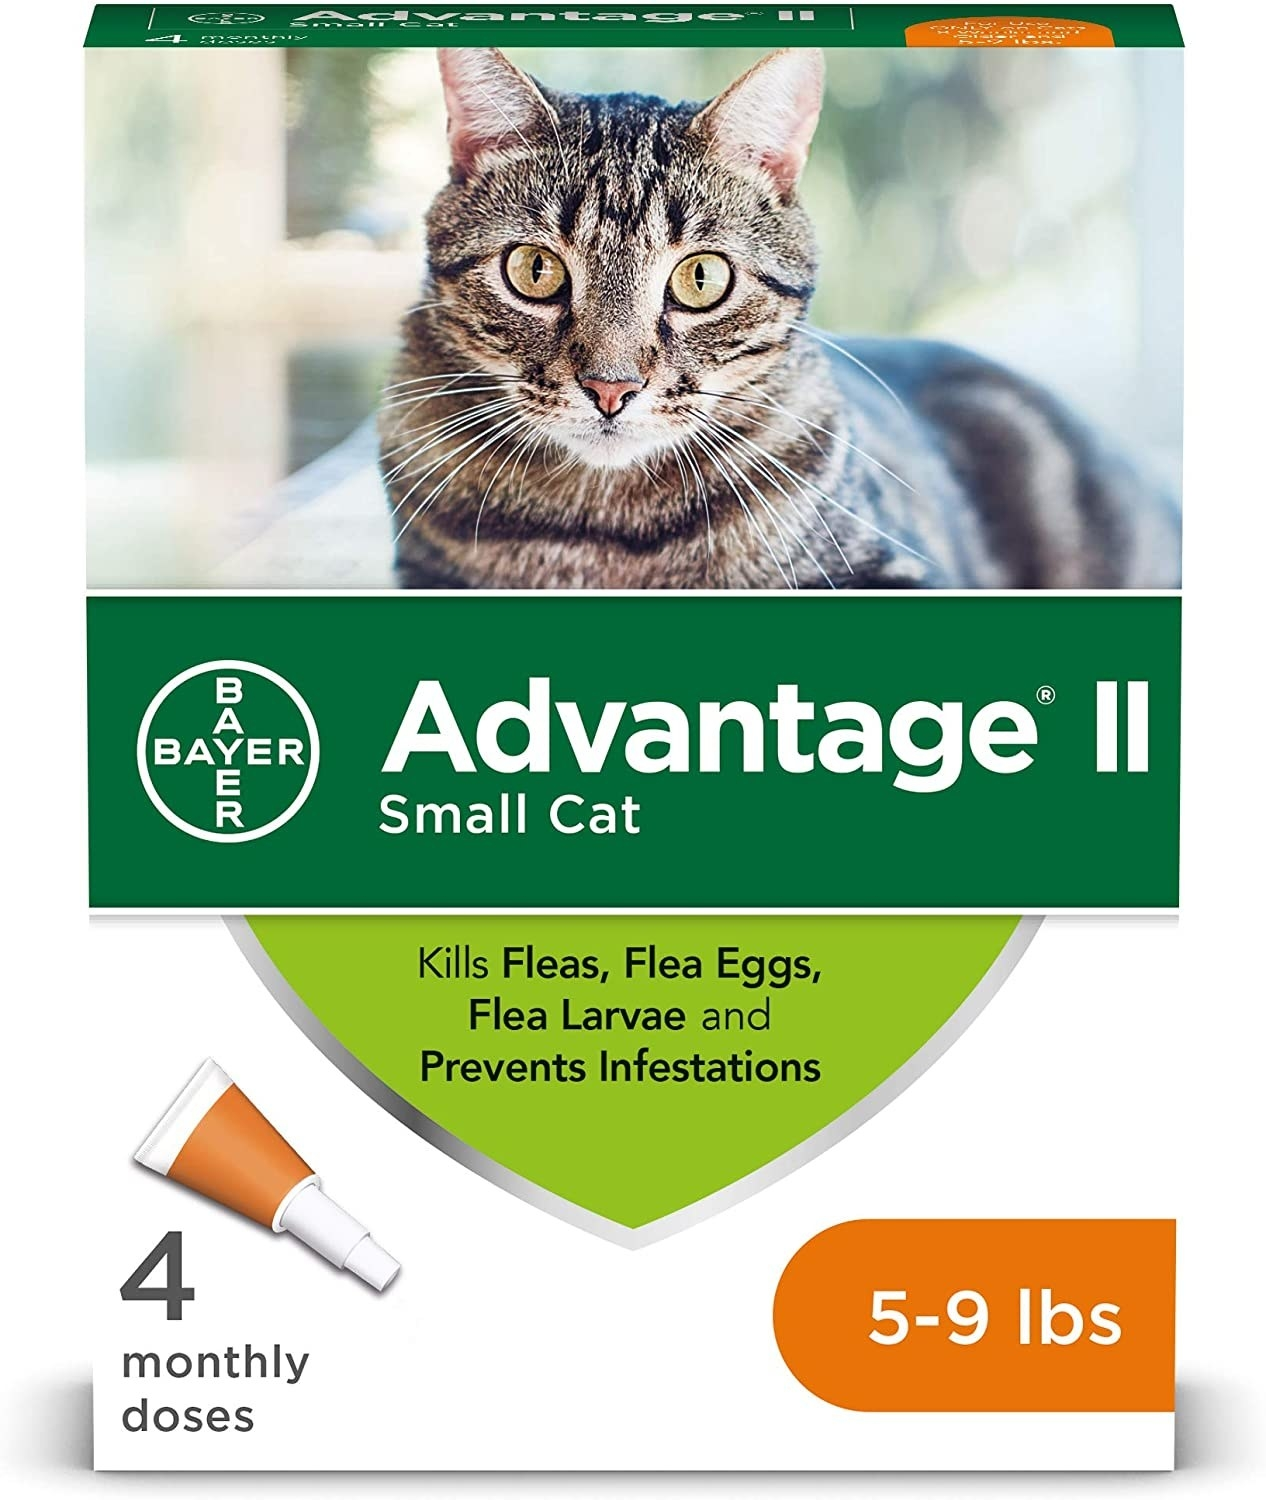 a green and white box of flea treatments with 4 monthly doses suitable for cats 5-9 lbs